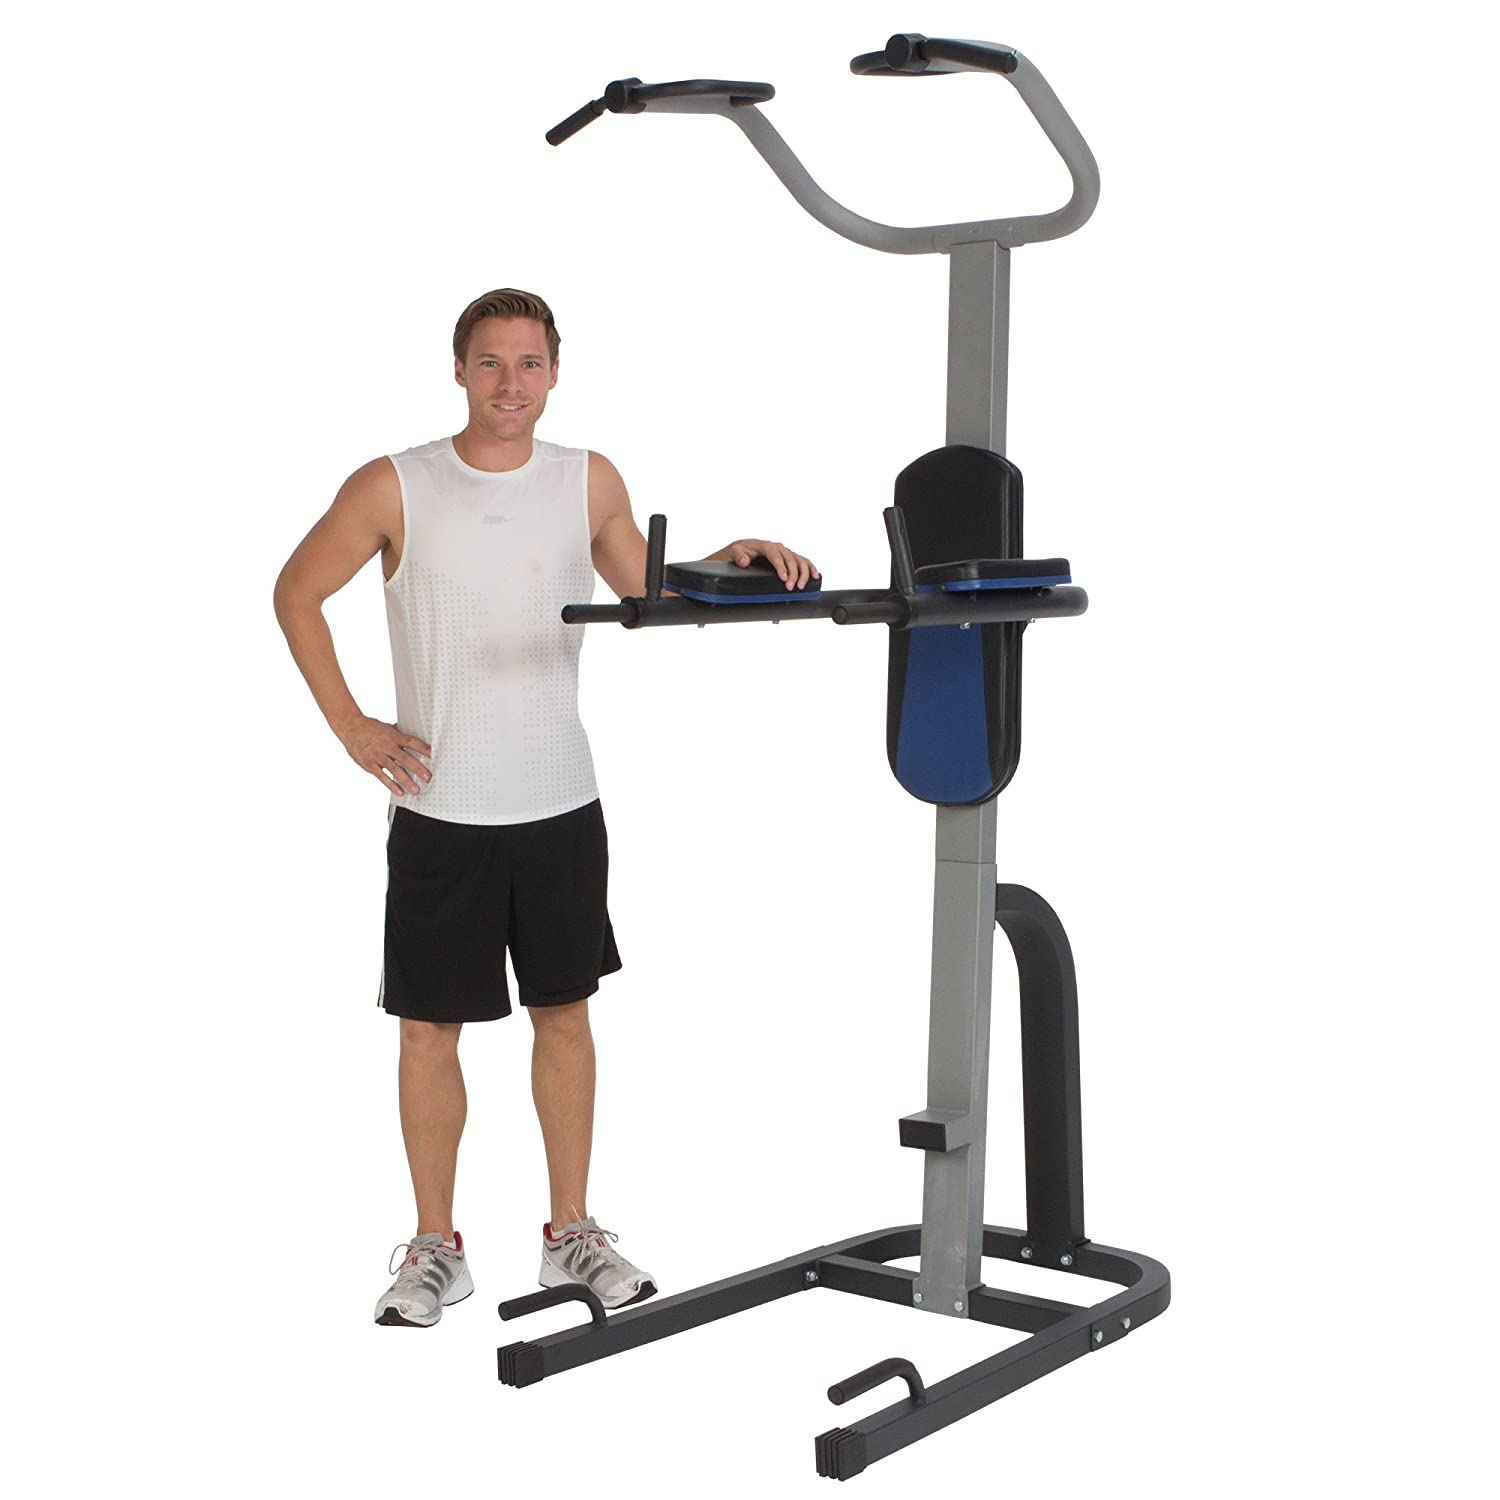 Amazon.com : ProGear 275 Tower Fitness Station with Extended Capacity Power  : Aquatic Fitness Equipment : Sports & Outdoors